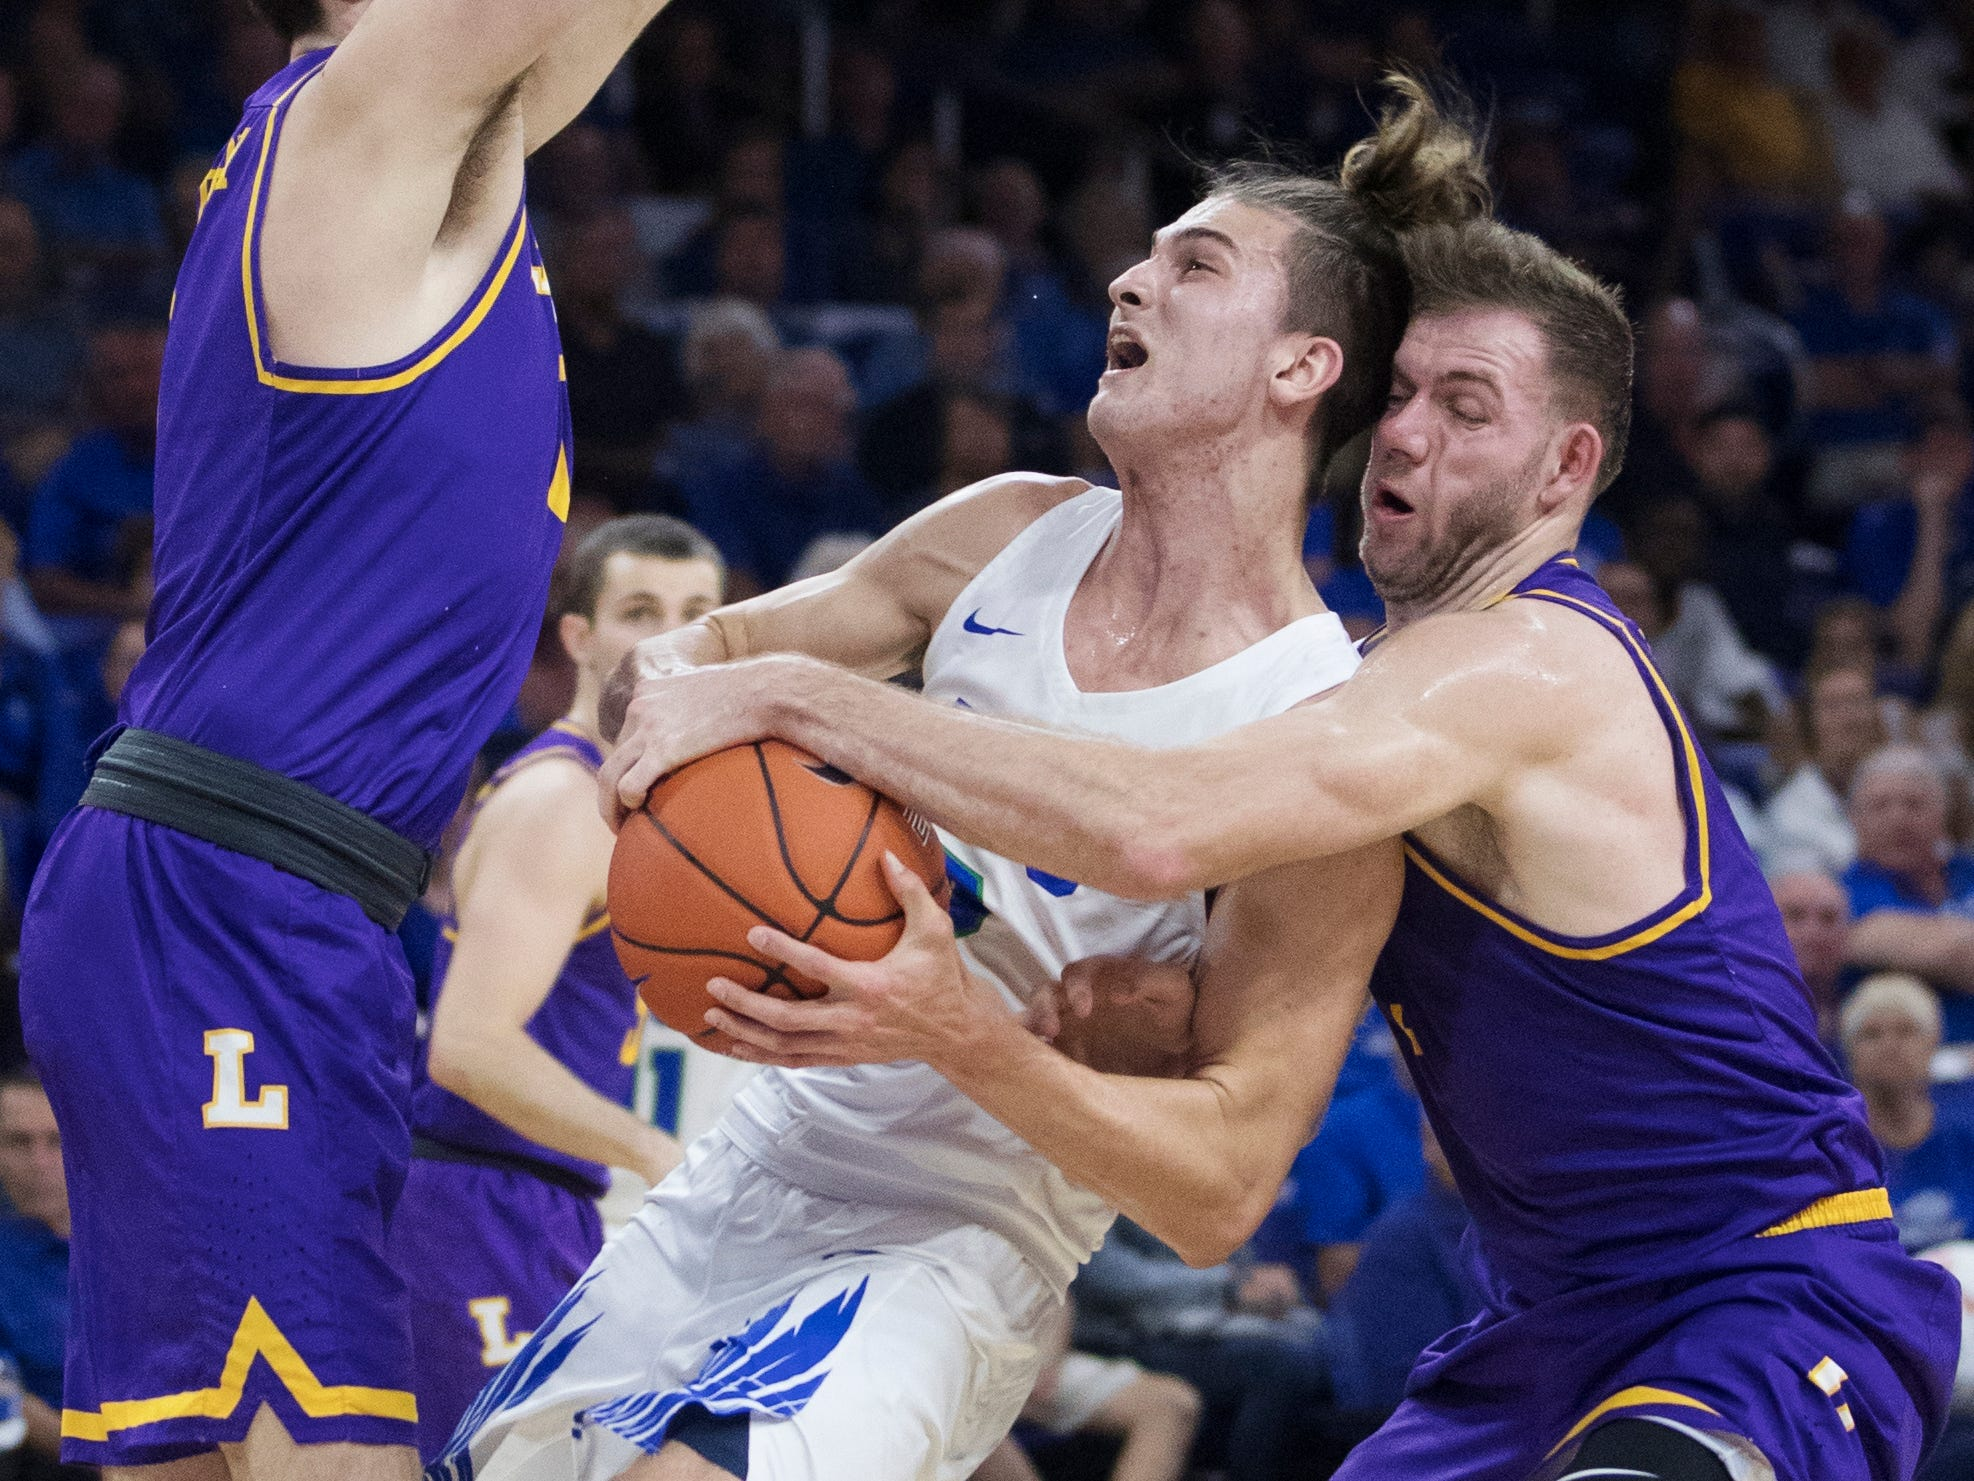 Florida Gulf Coast University's Caleb Catto drives to the basket against Lipscomb's Rob Marberry, left, and Michael Buckland on Wednesday at FGCU in Fort Myers. FGCU beat Lipscomb 67-61.